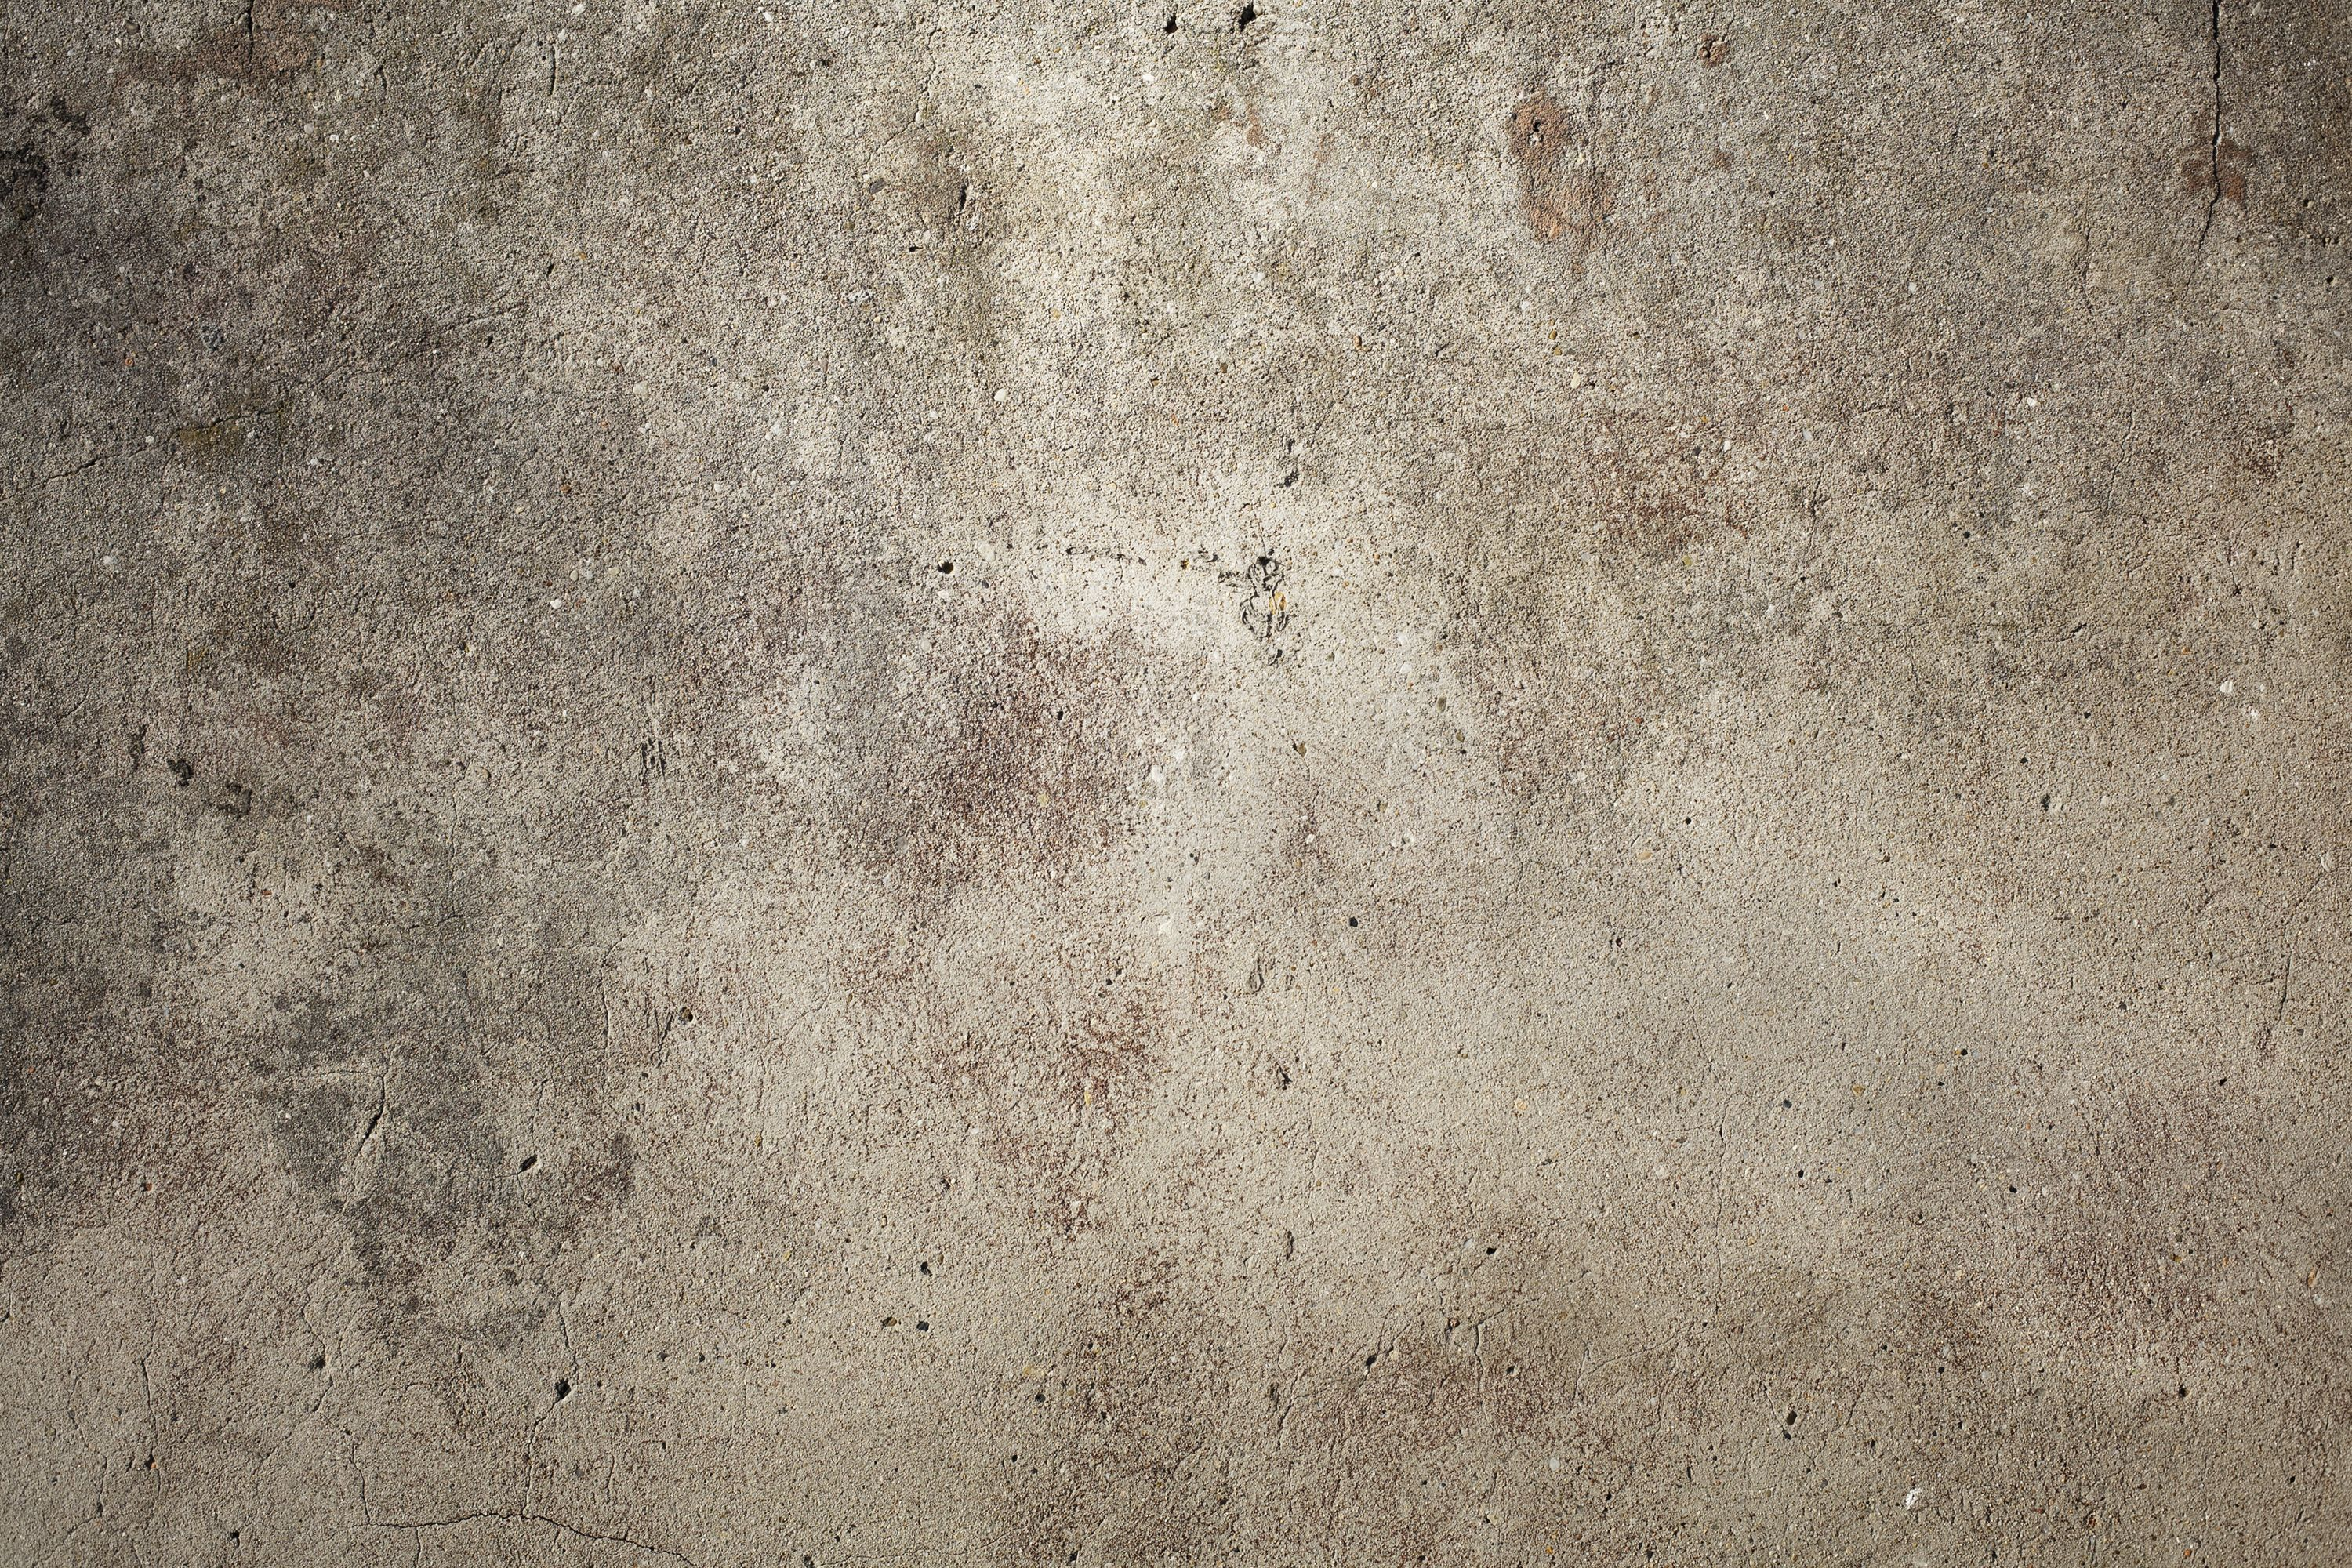 Texturing Concrete Walls Wall Texture Google Search Concrete Wall Free Resource